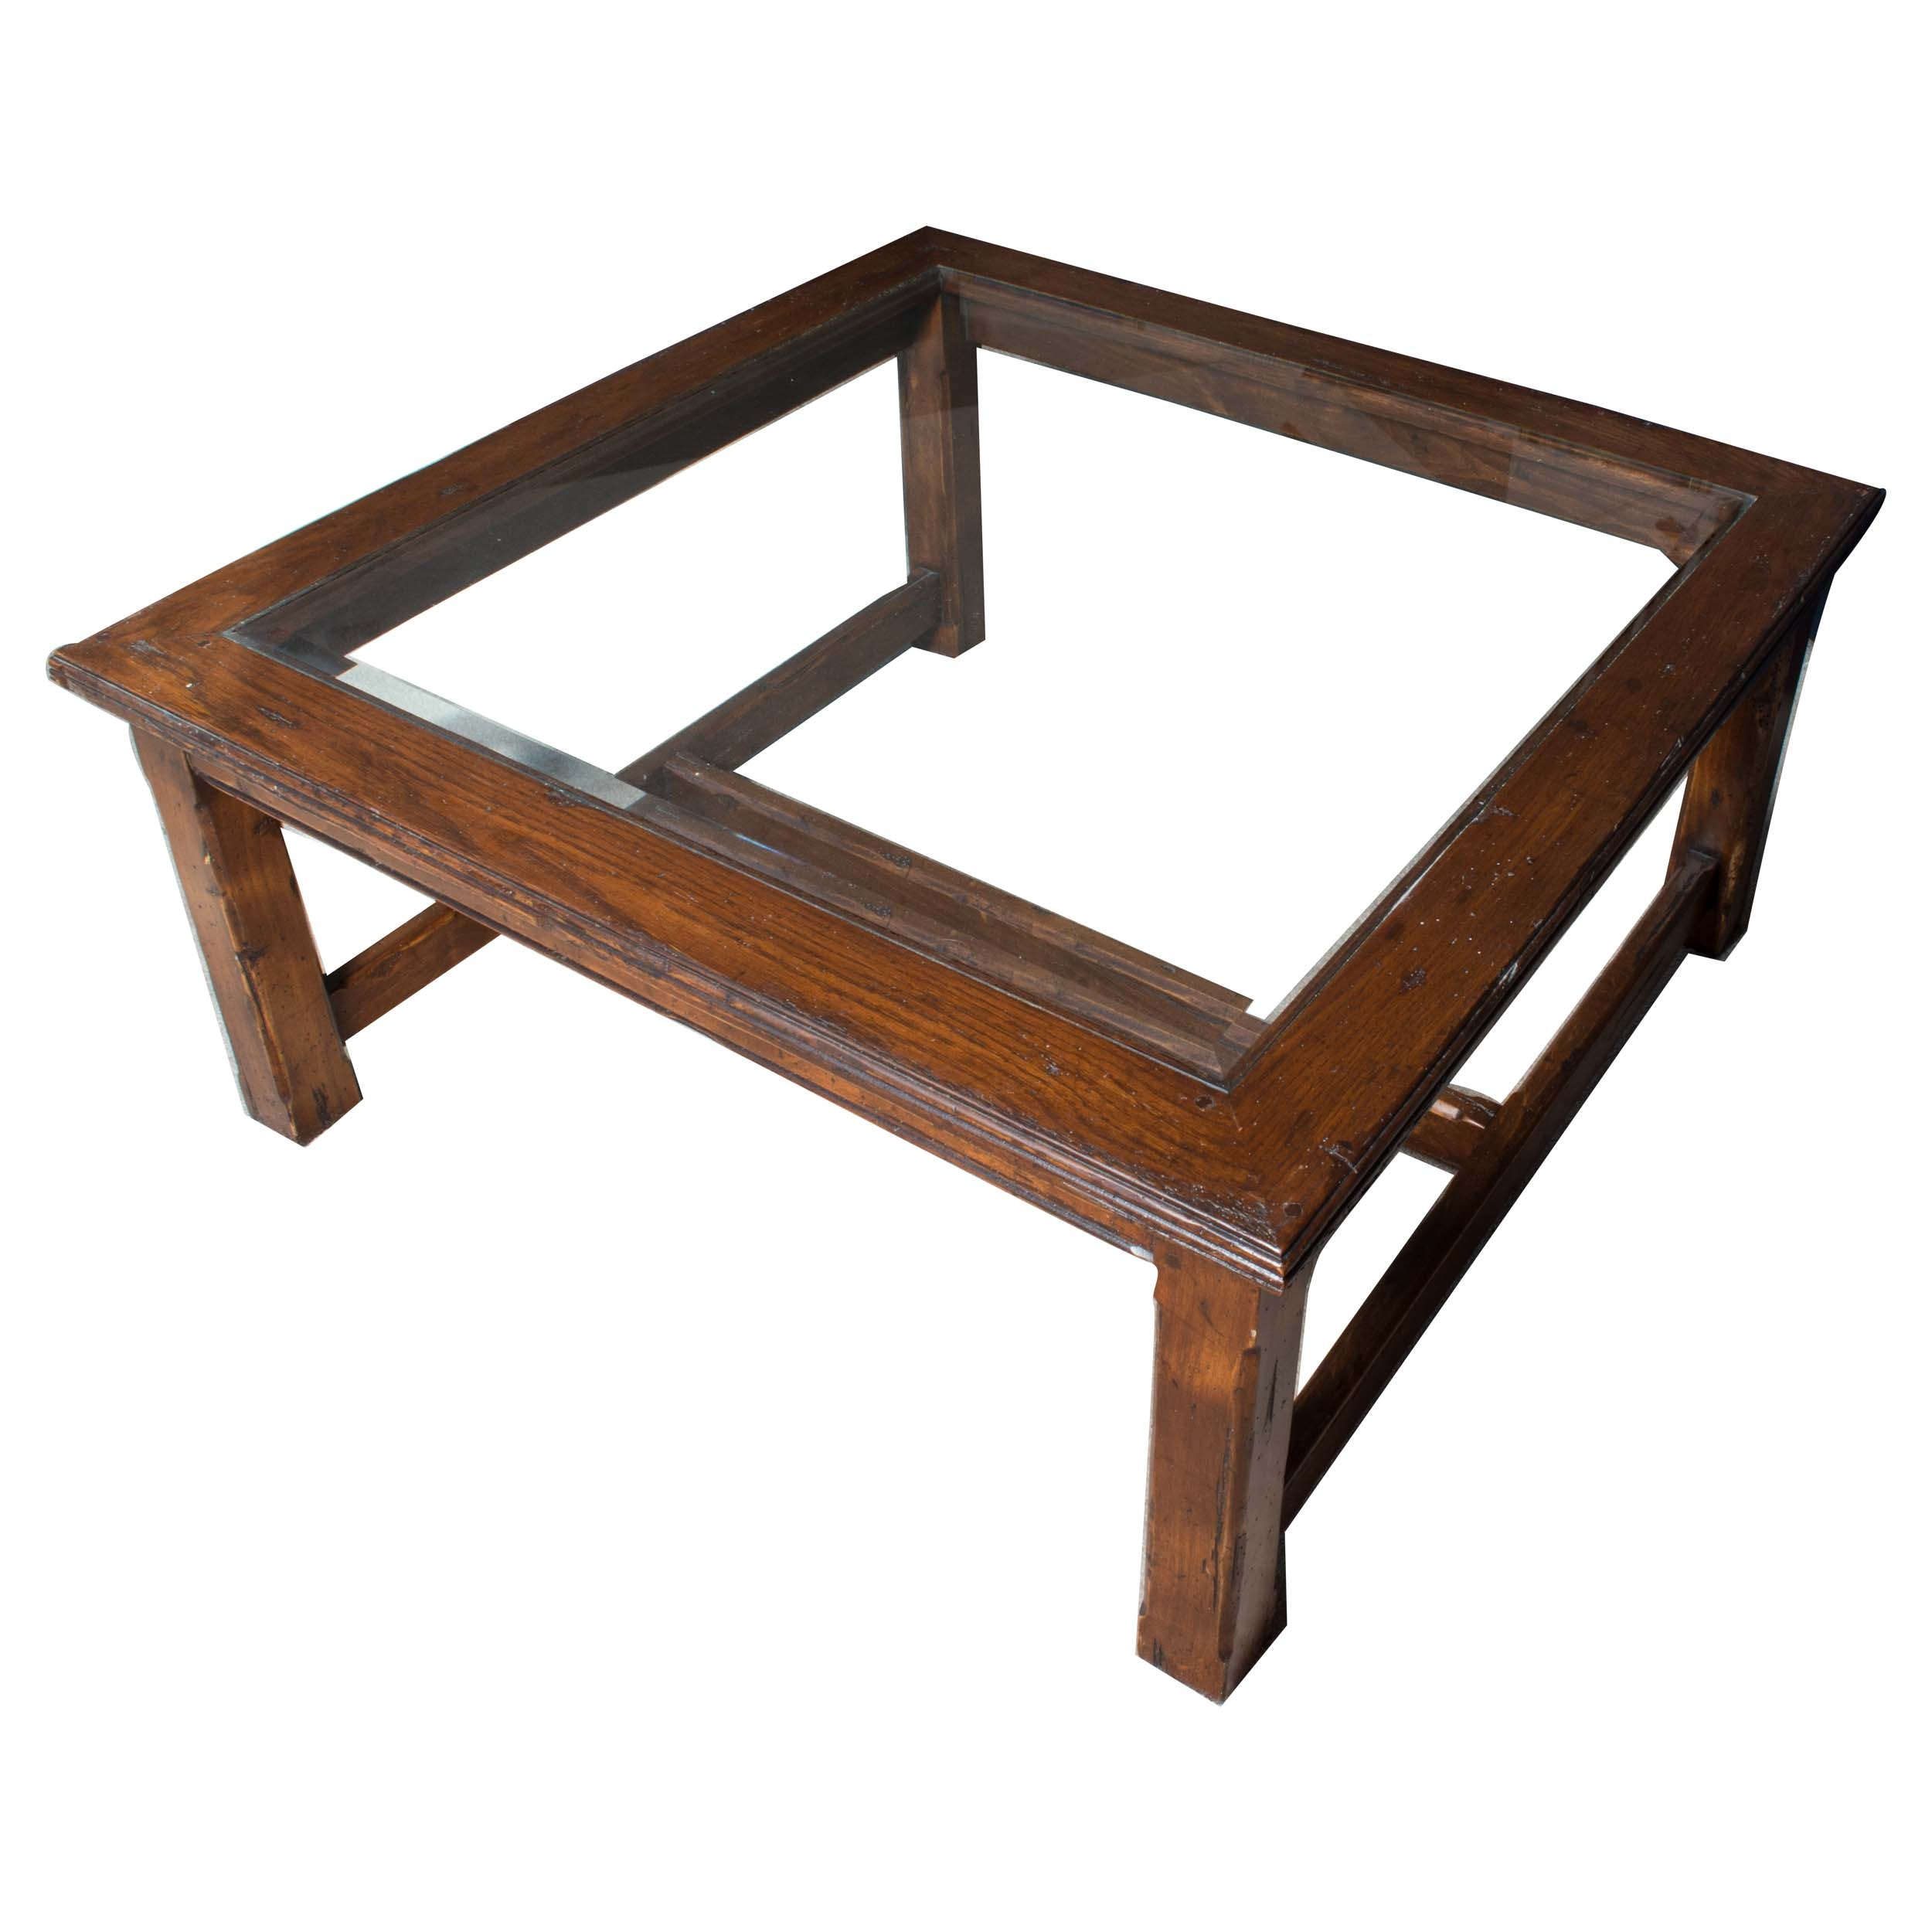 Square Oak Coffee Table With Beveled Glass Panel Insert ...